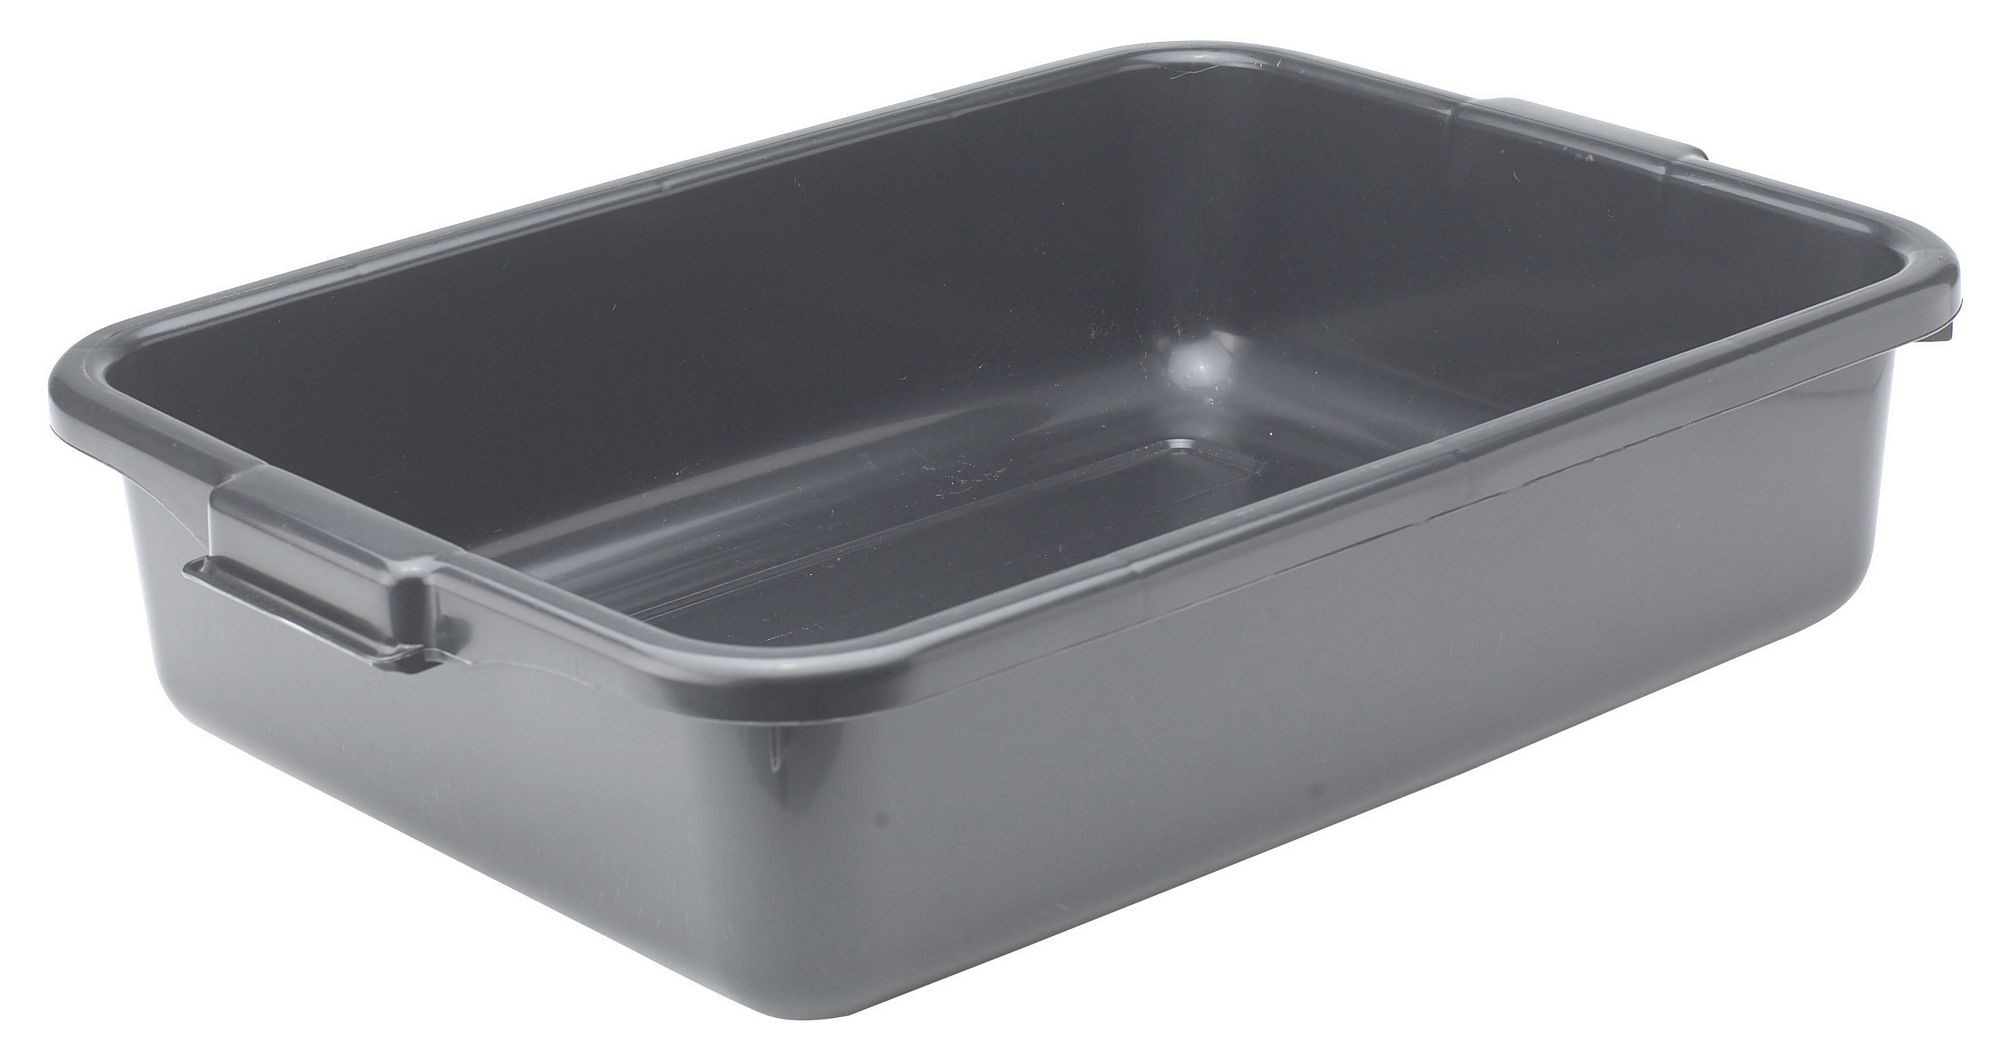 Black Dish Box - 20-1/4 x 15-1/2 x 5